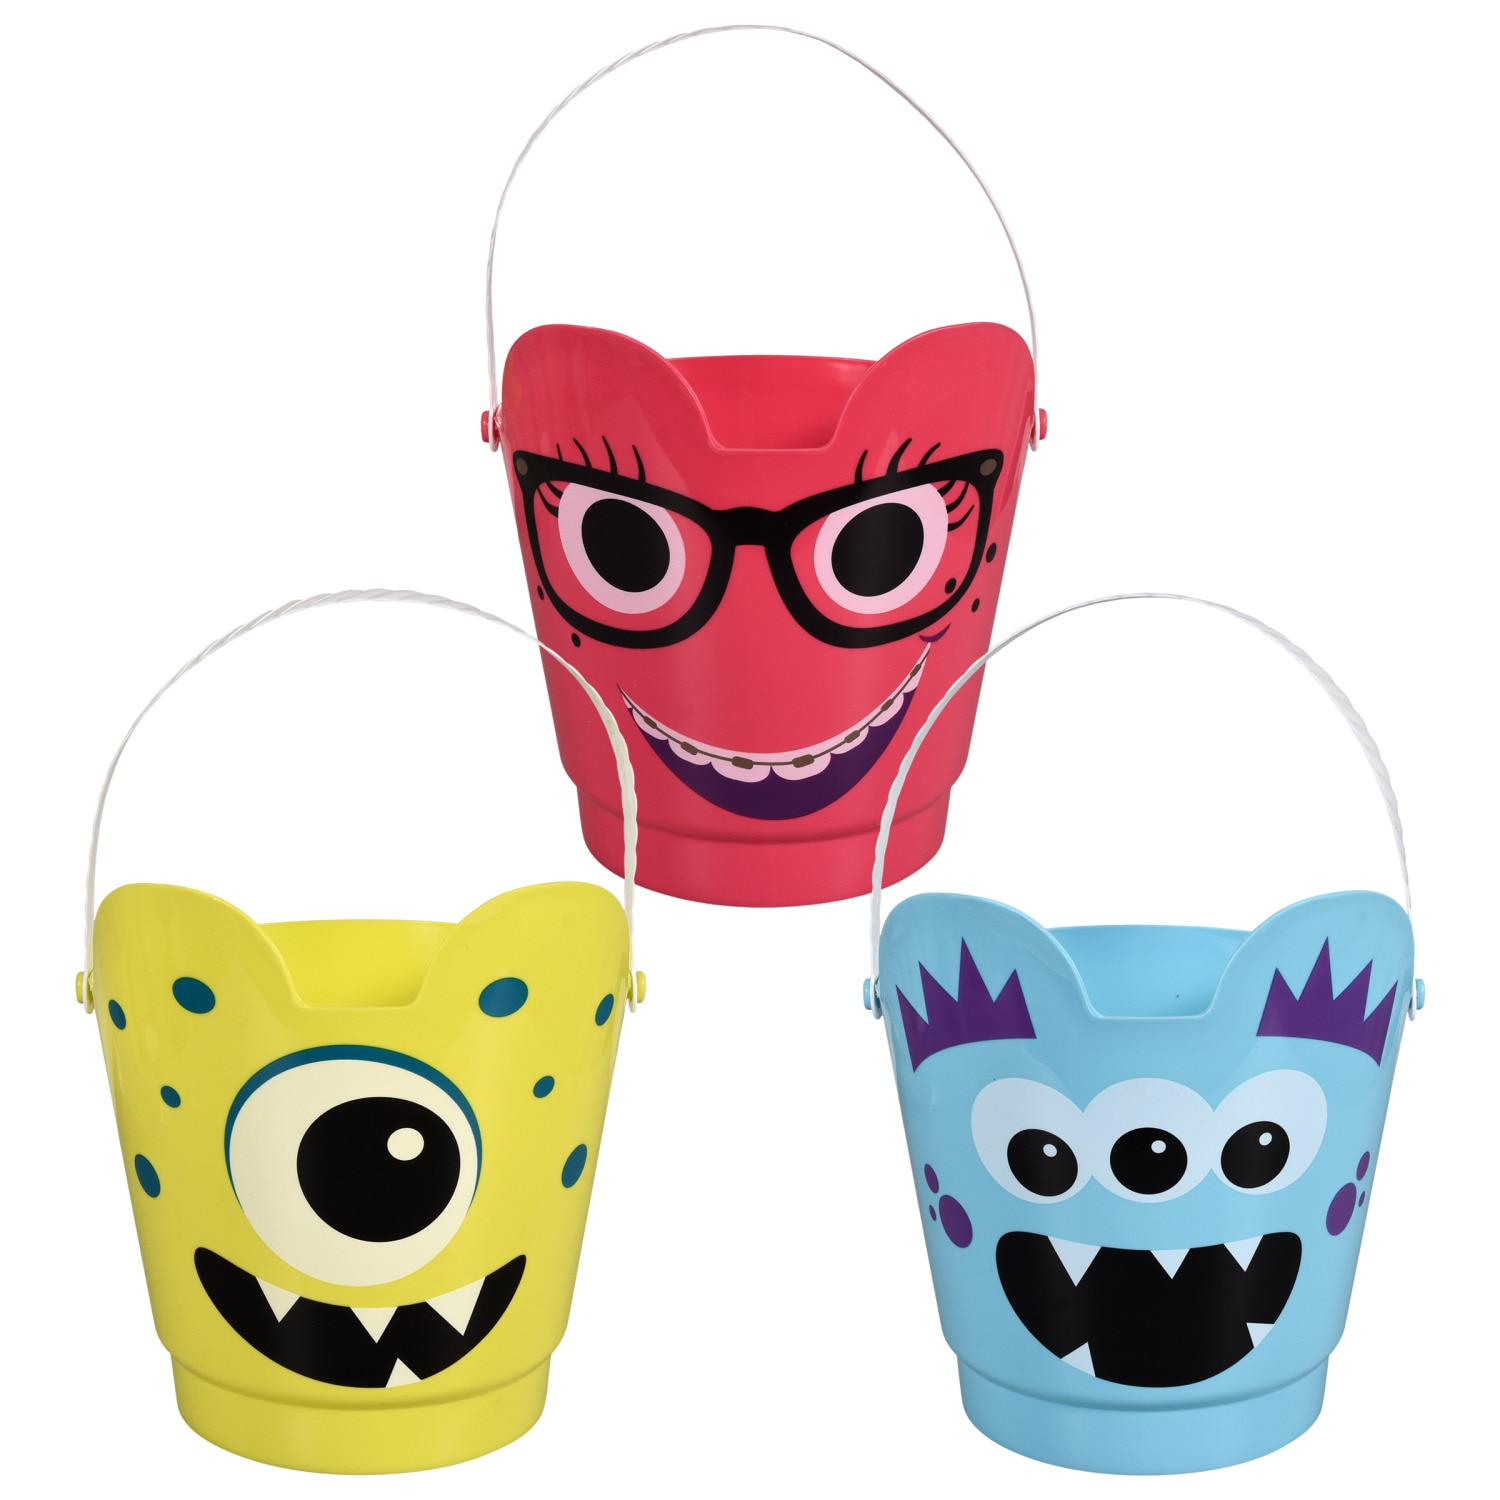 Monster Face Plastic Pails with Handles